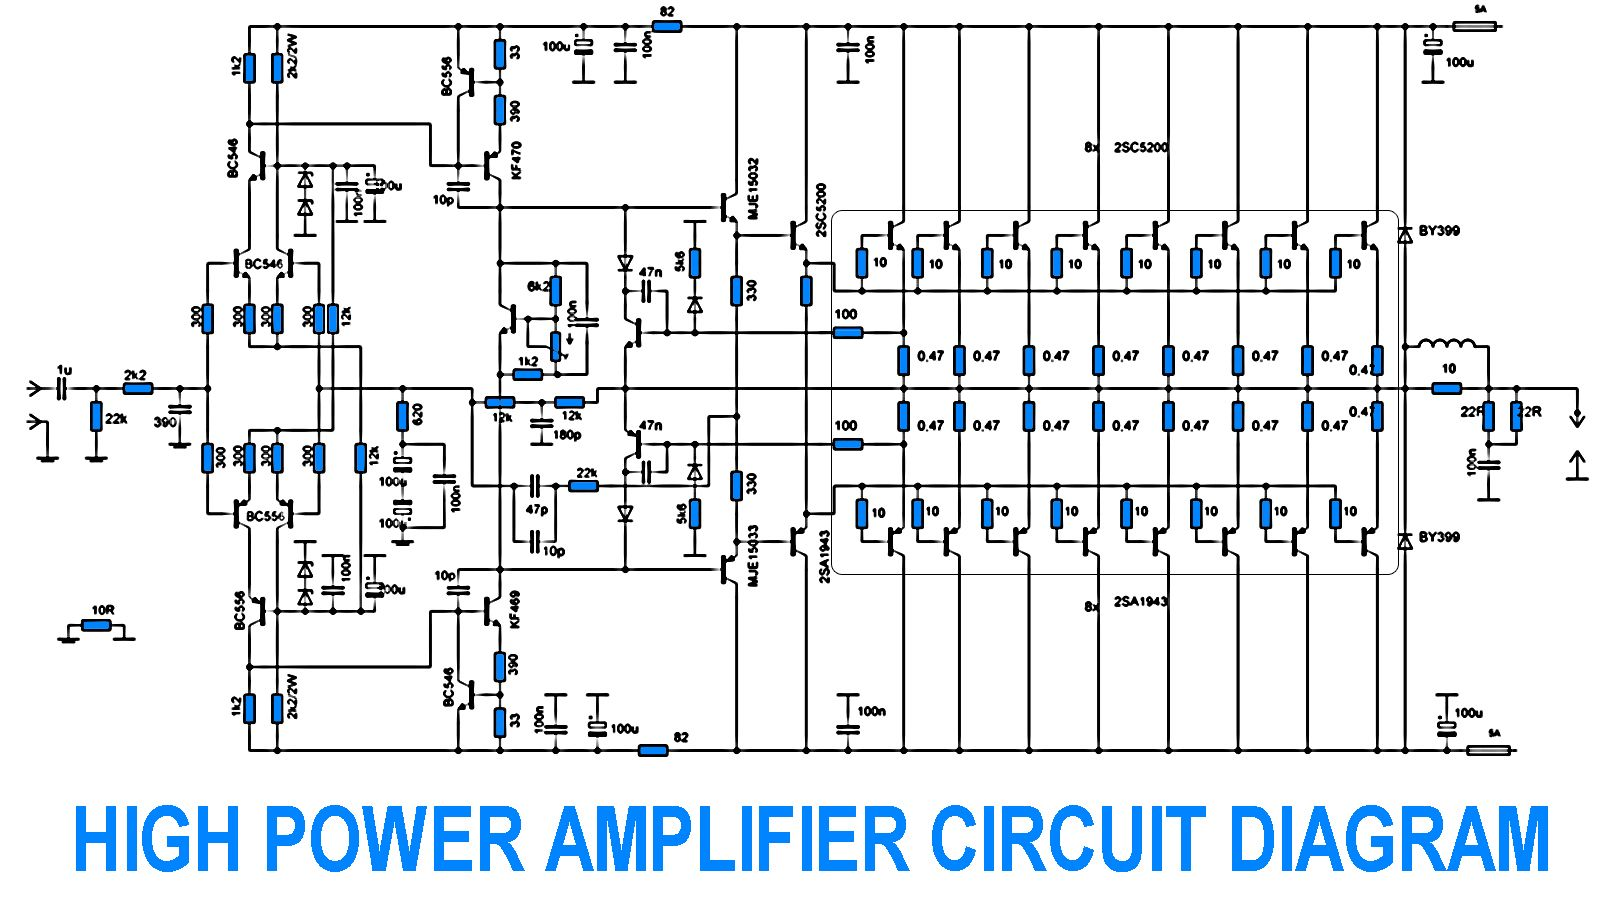 bridged mono wiring diagram apac air conditioner diagrams 700w power amplifier with 2sc5200 2sa1943 other project